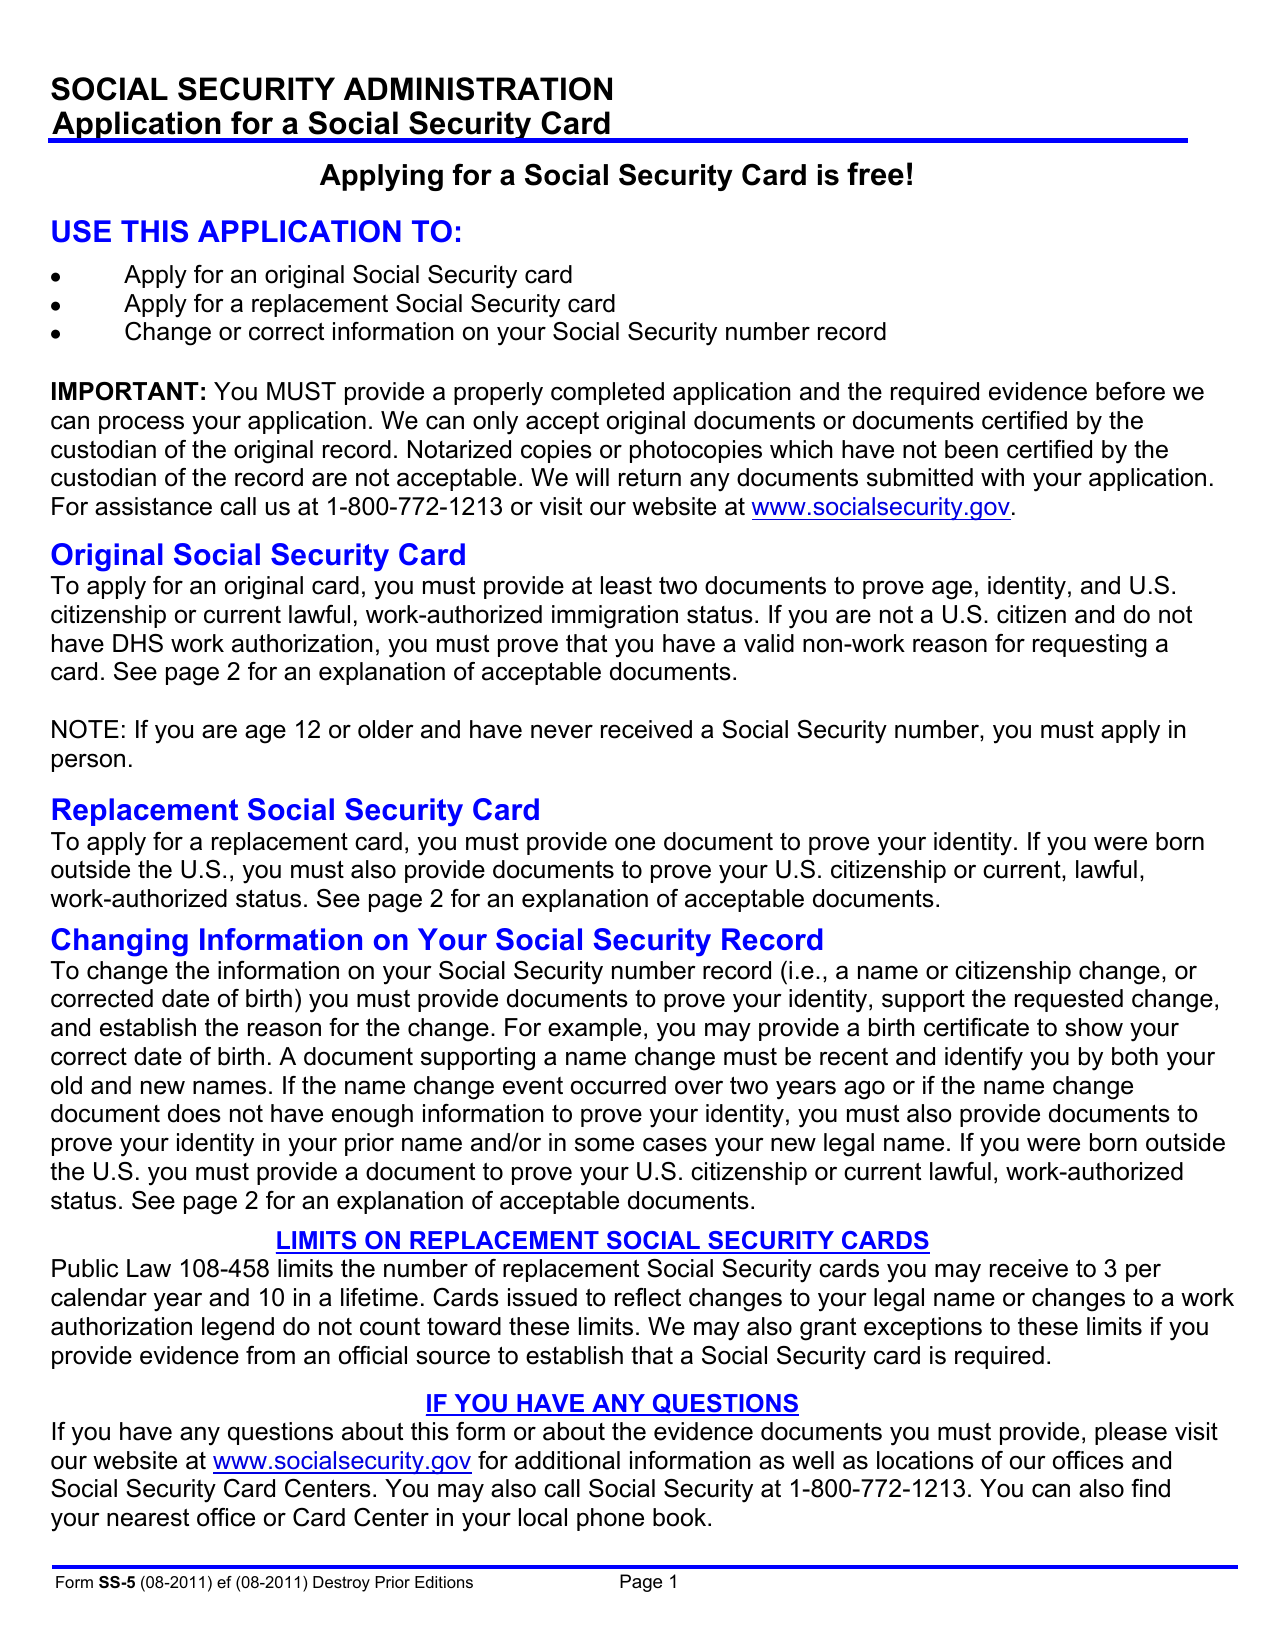 Social Security Administration Application For A Social Security Card Free!